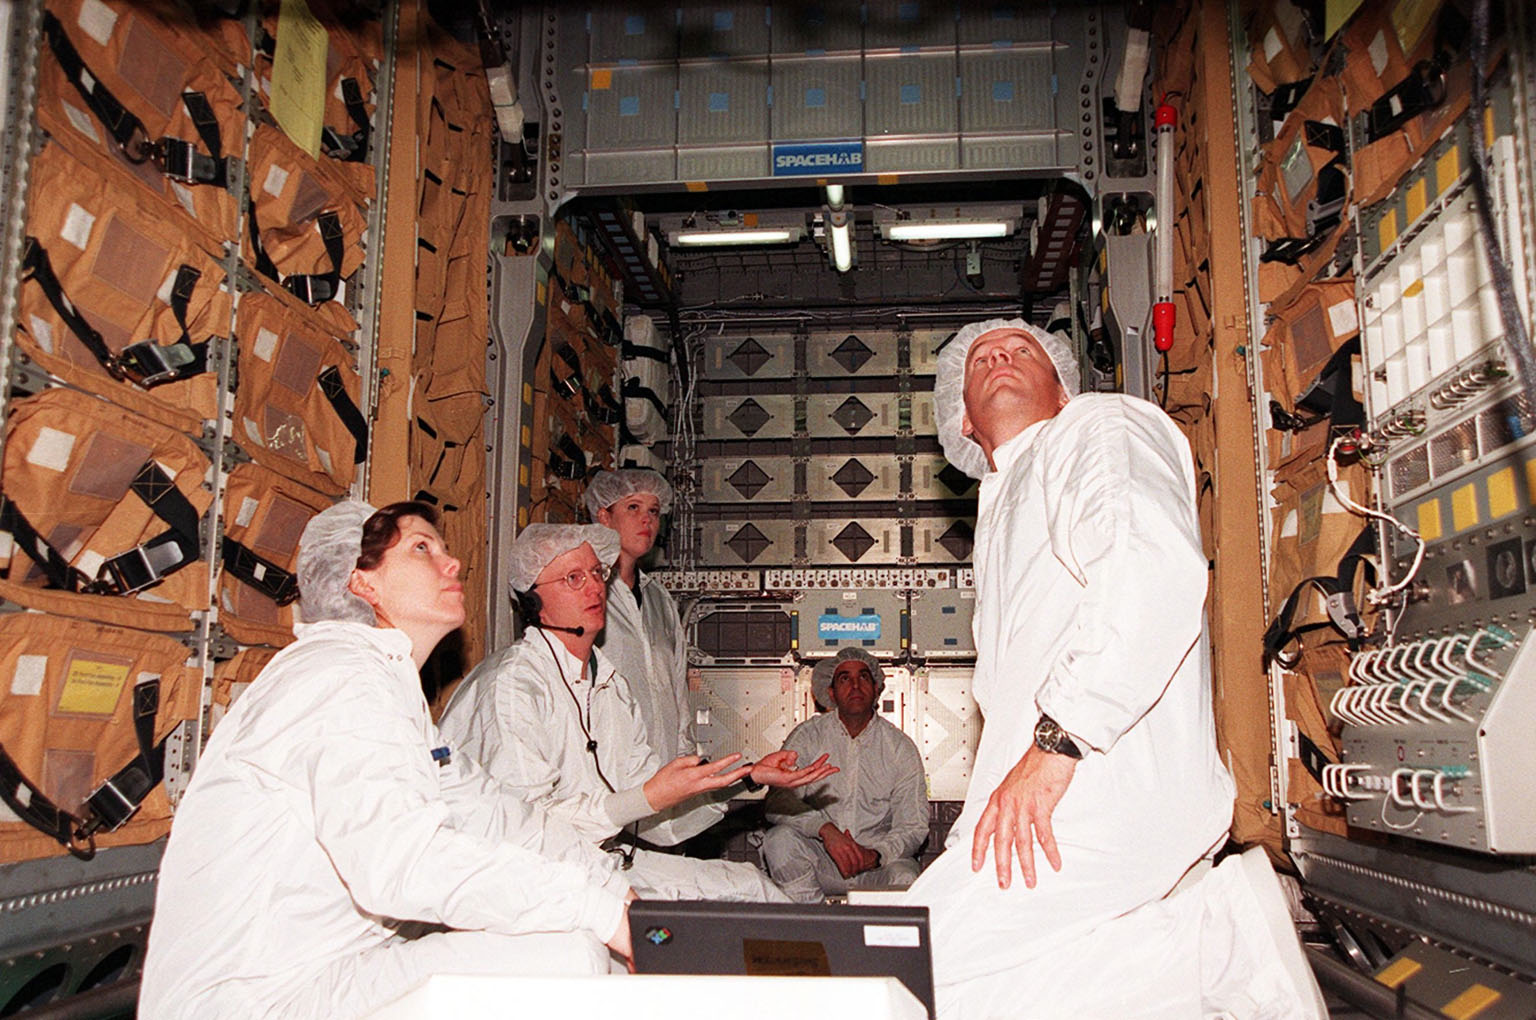 Members of the STS-101 crew look over equipment inside the SPACEHAB double module, part of the cargo on their mission. At left is Mission Specialist Mary Ellen Weber and at right is Mission Specialist Jeffrey Williams. They are taking part in Crew Equipment Interface Test (CEIT) activities to become familiar with equipment for their mission to the International Space Station. Other crew members not shown are Commander James Halsell, Pilot Scott Horowitz, and Mission Specialists James Voss, Susan Helms and Yuri Usachev. The STS-101 crew will be responsible for preparing the Space Station for the arrival of the Zvezda Service Module, expected to be launched by Russia in July 2000. Also, the crew will conduct one space walk to perform maintenance on the Space Station and deliver logistics and supplies. This will be the third assembly flight for the Space Station. STS-101 is scheduled to launch no earlier than April 13 from Launch Pad 39A